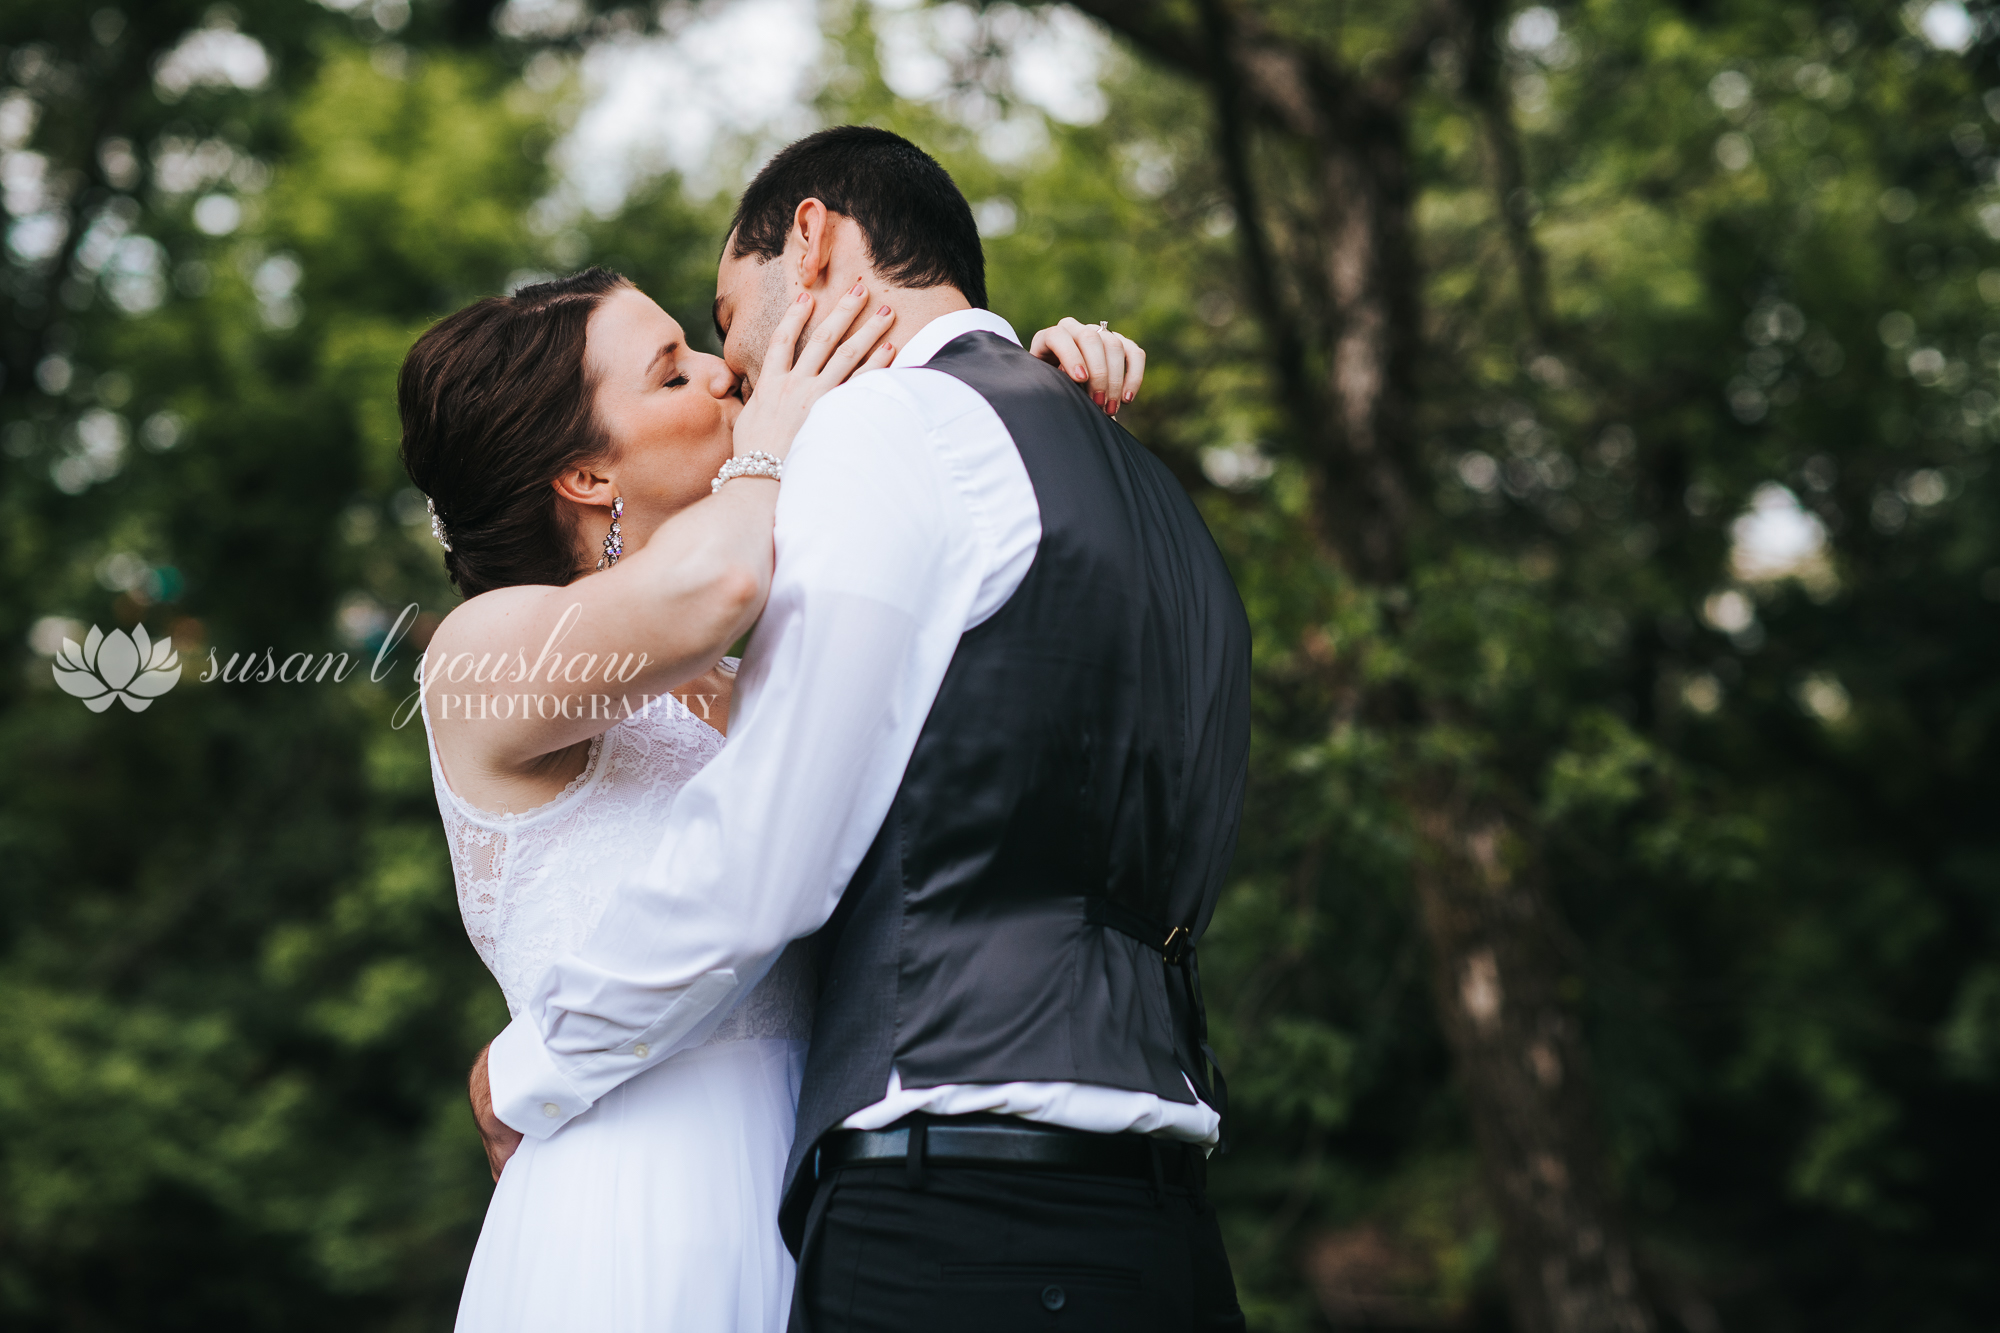 Adena and  Erik Wedding 05-17-2019 SLY Photography-39.jpg